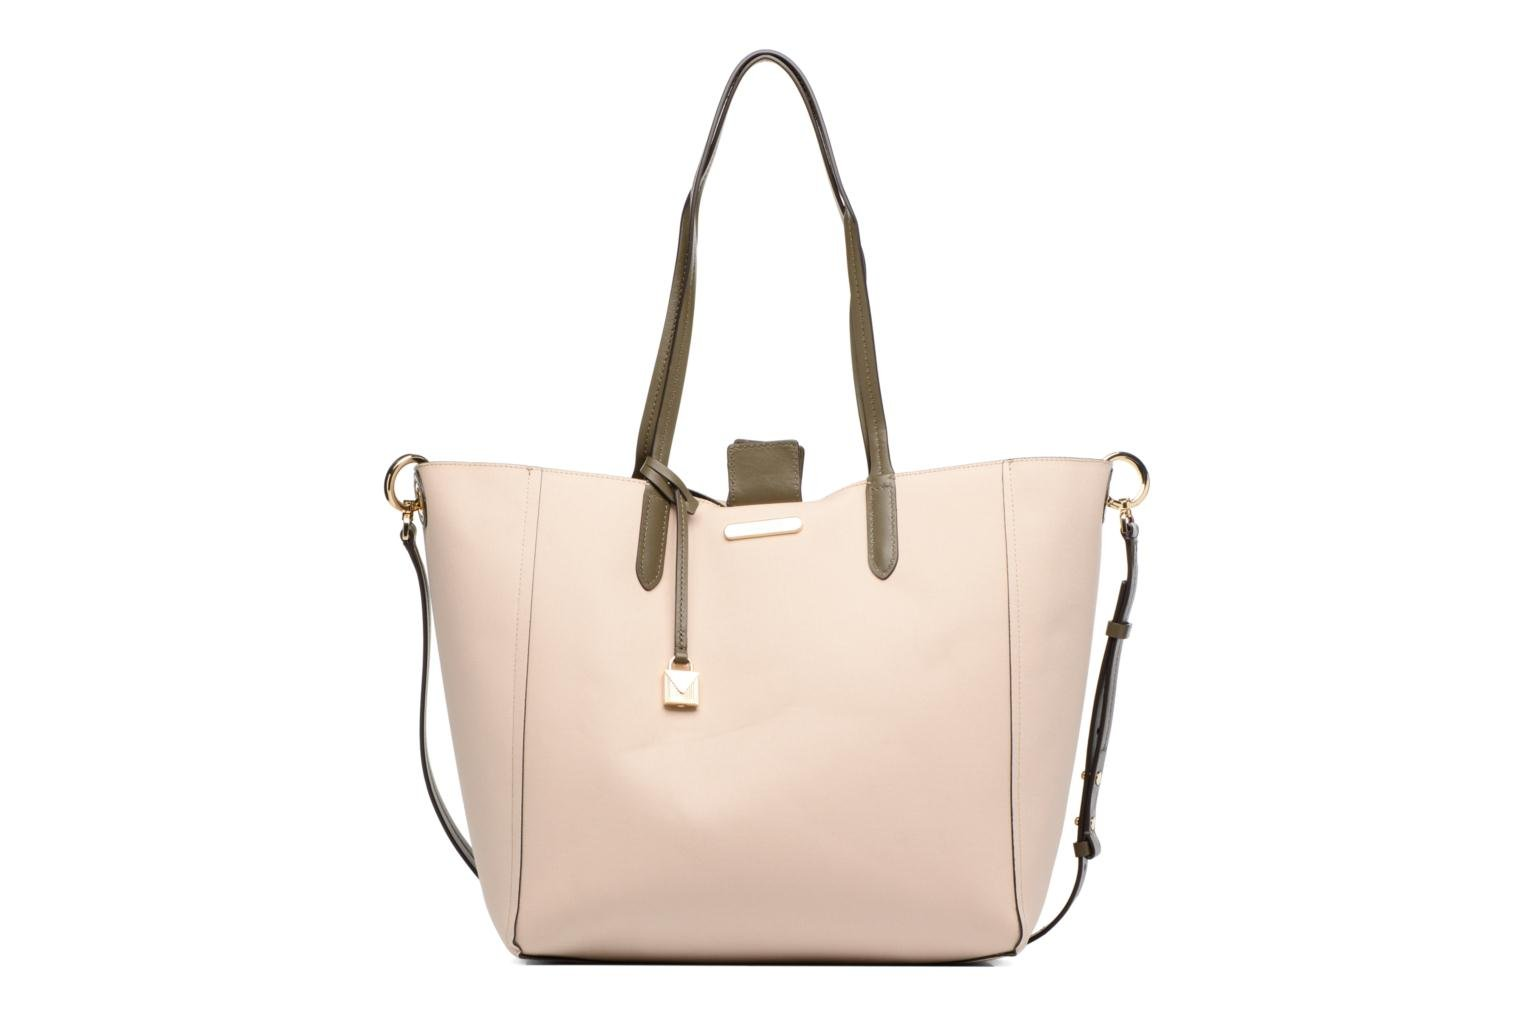 PENNY LG CONVERTIBLE TOTE 333 OLIVE